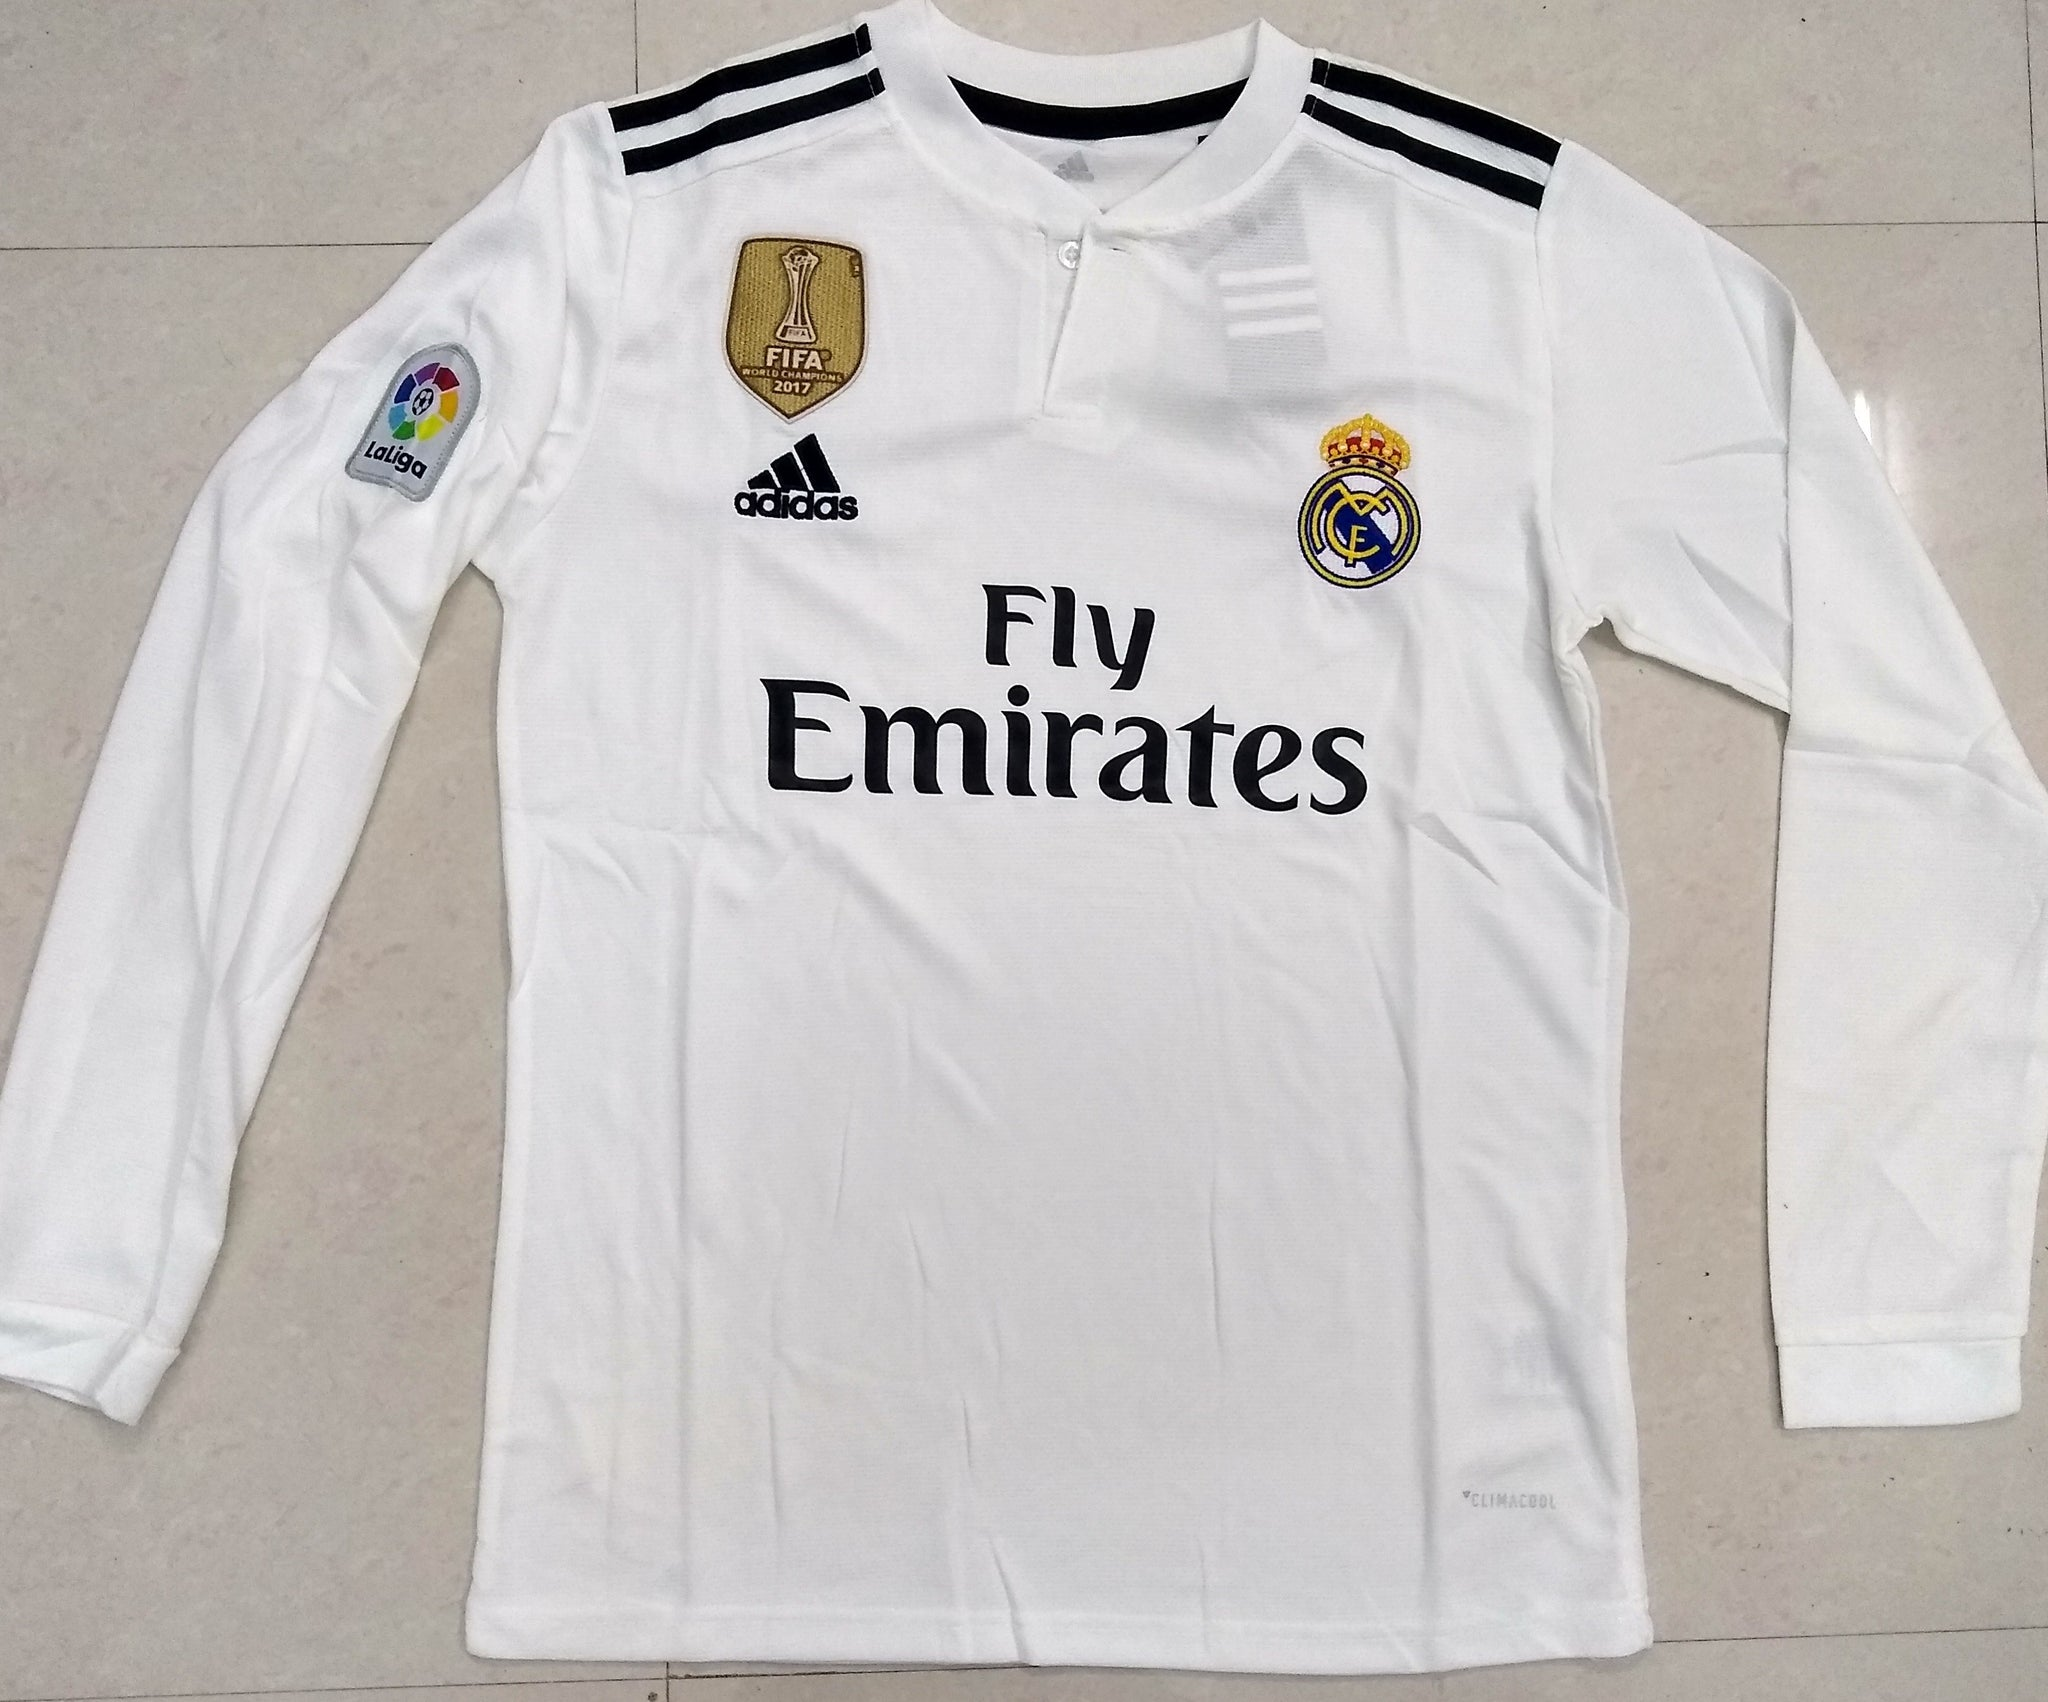 wholesale dealer e8c2a 235db Real Madrid Home Football Jersey New Season 2018-19 kit ...